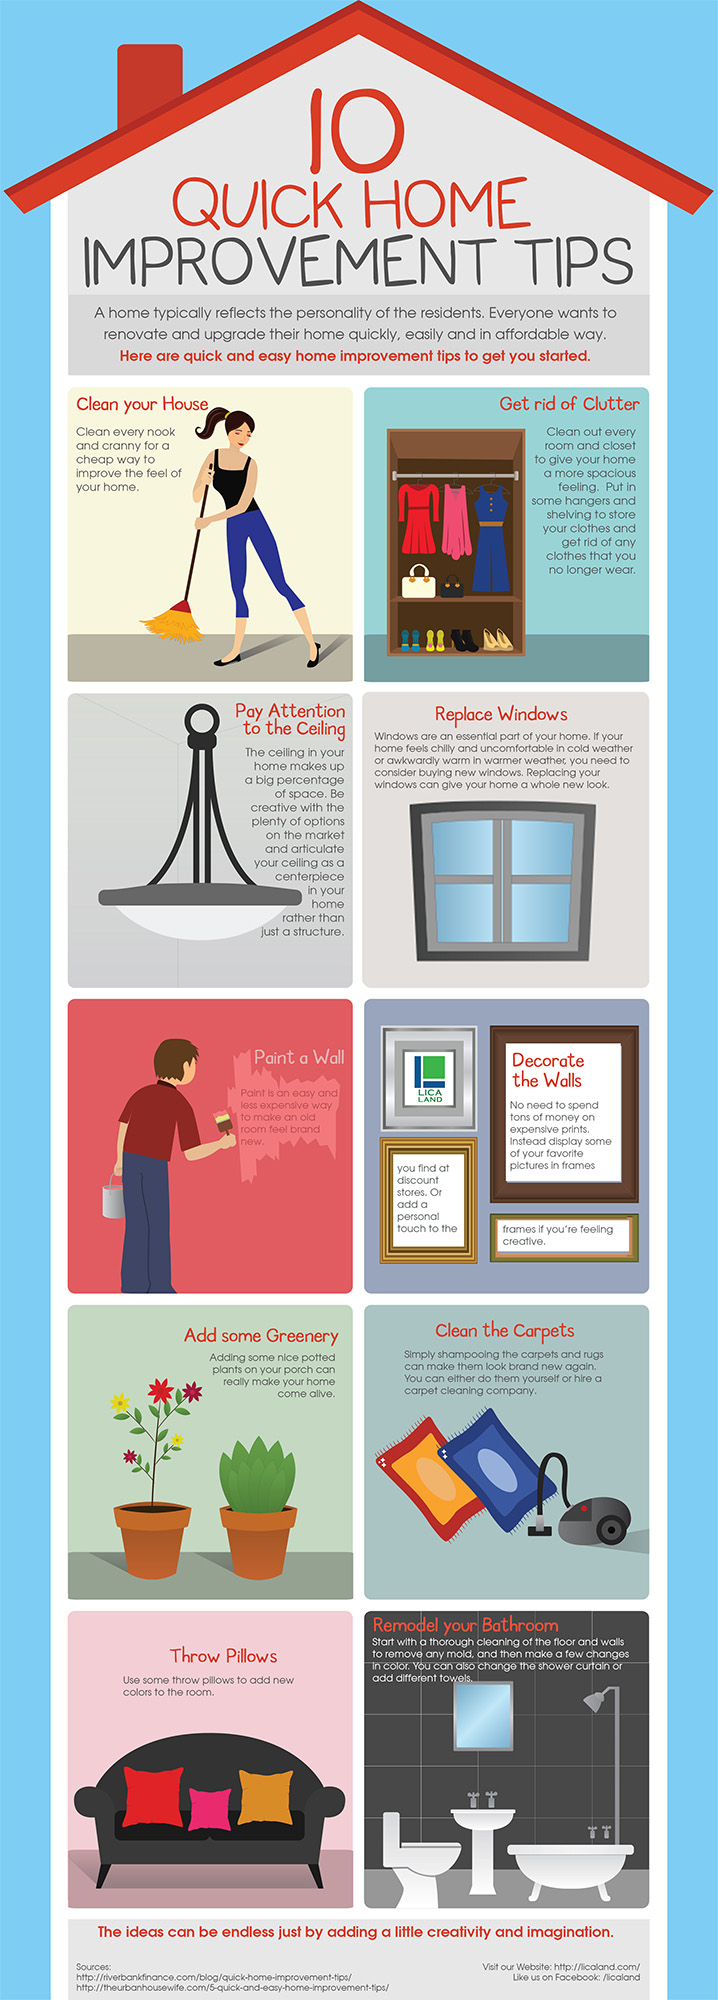 Ten common quick tips for your home improvement for Home improvement tips